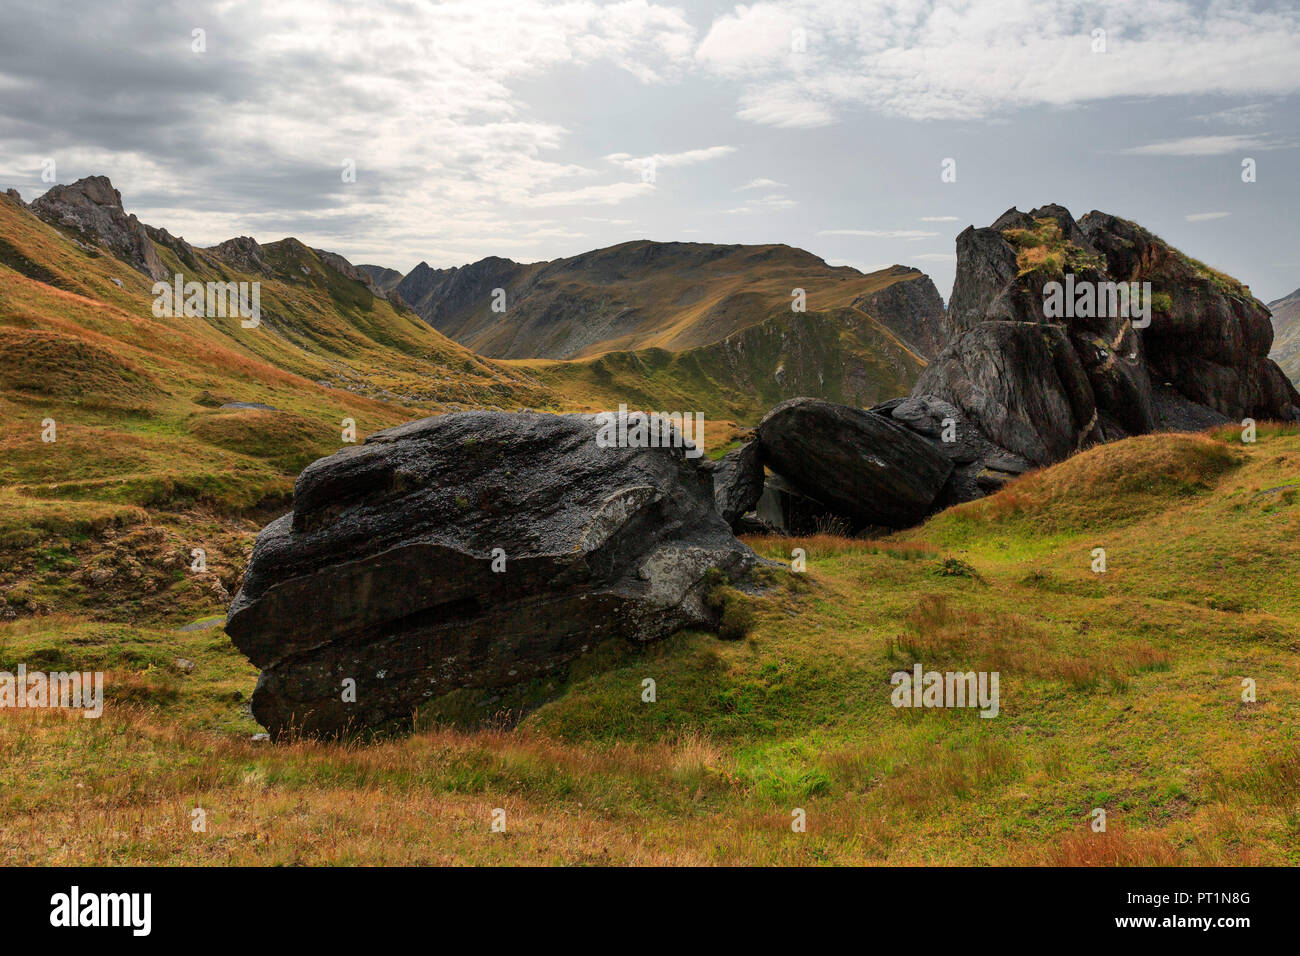 Particular volcanic formations near Passo di Gana Negra, Blenio valley, Canton Ticino, Switzerland, Europe - Stock Image